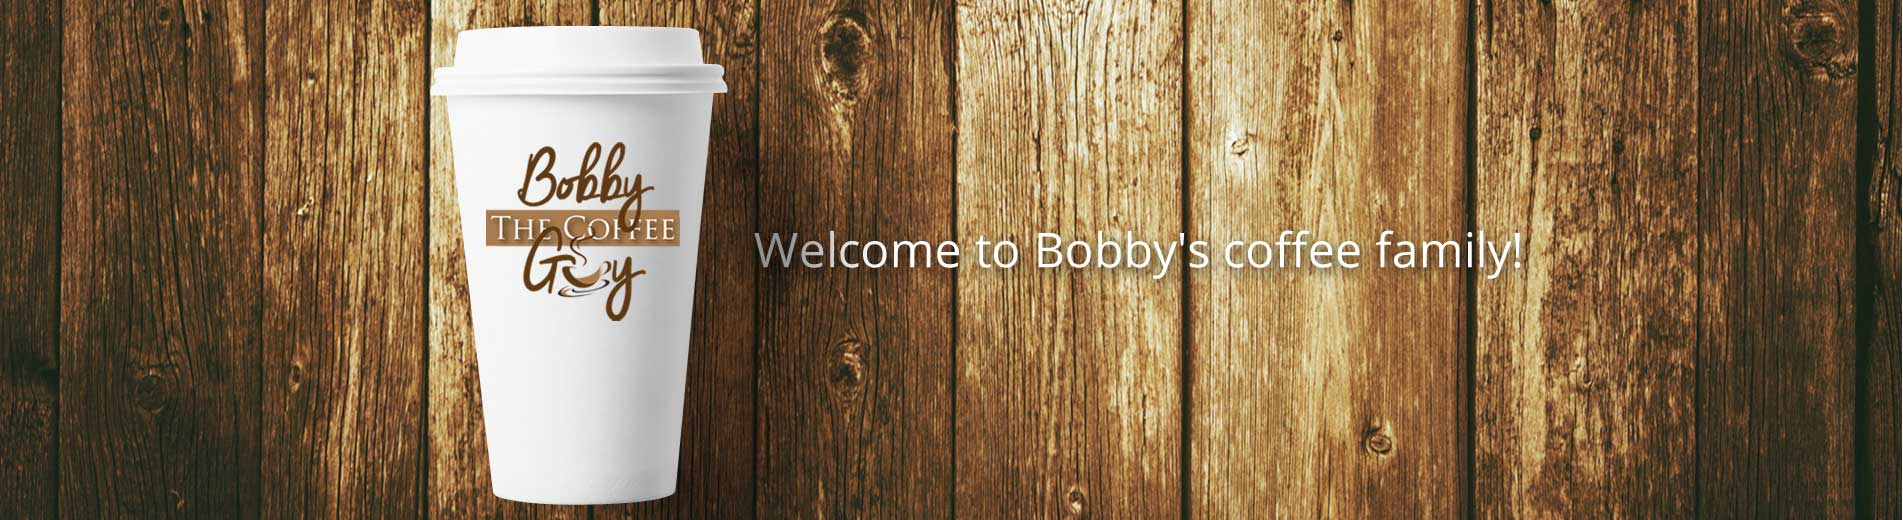 Bobby the Coffee Guy